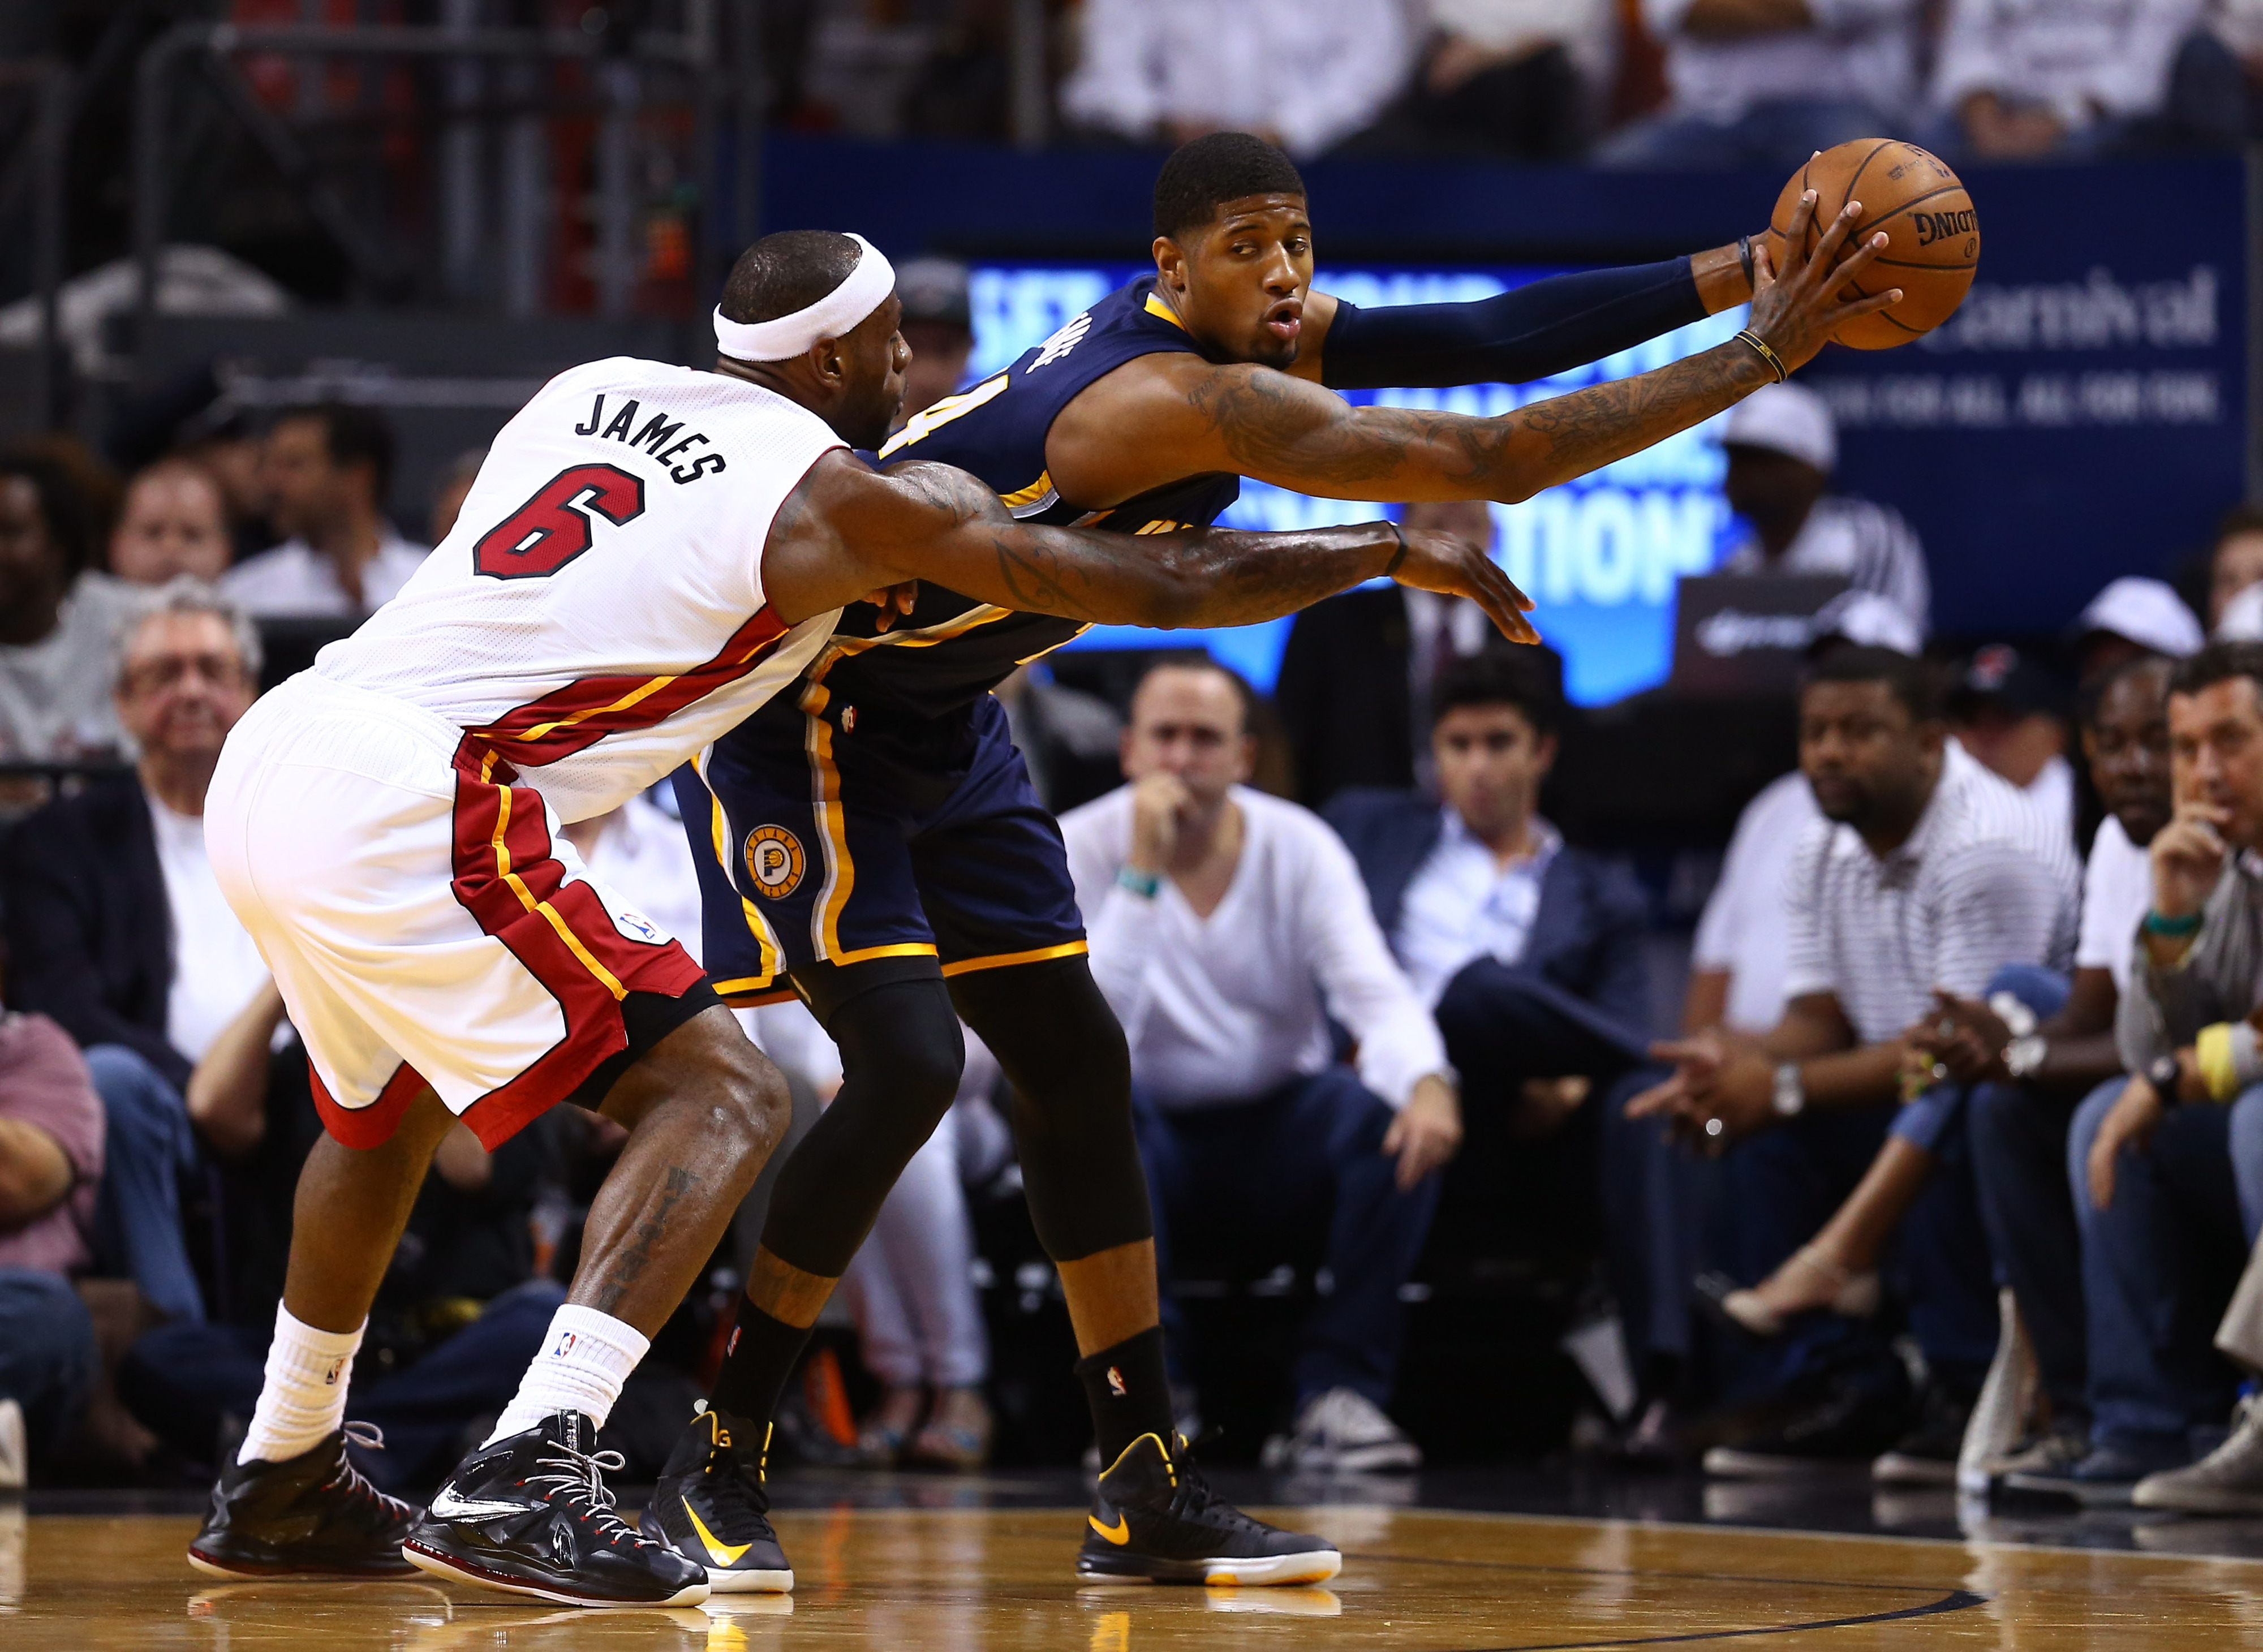 Pacers vs. Heat score update, Game 5: Pacers lead Heat, 44-40, through the first half